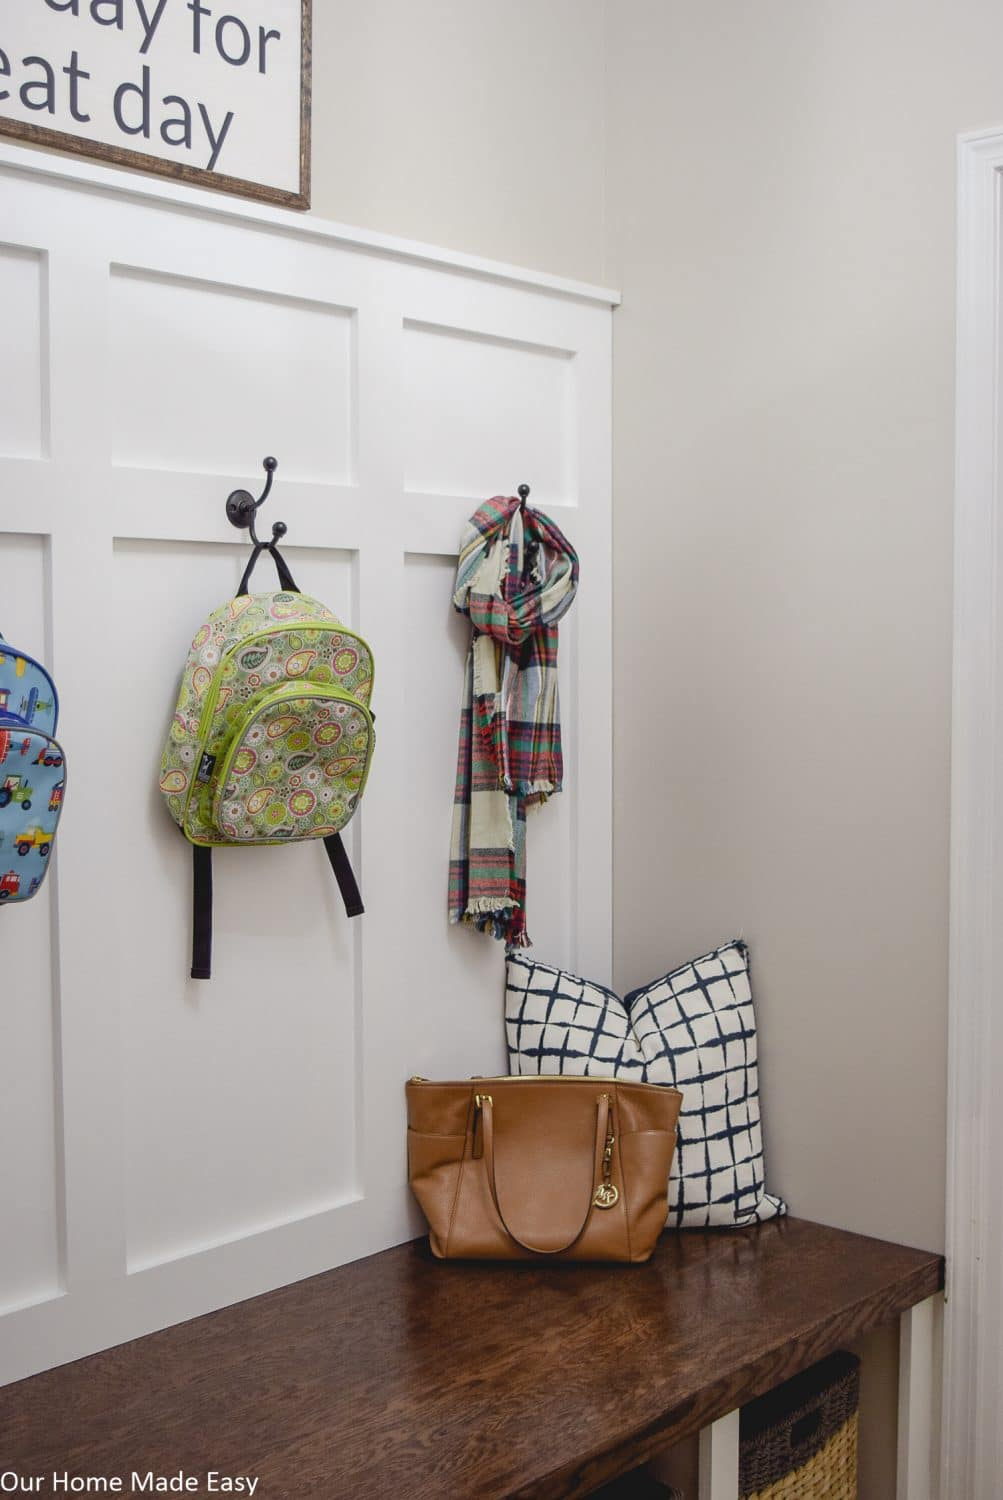 The color scheme in our mudroom and entry way is light beige, to keep the room feeling open and bright